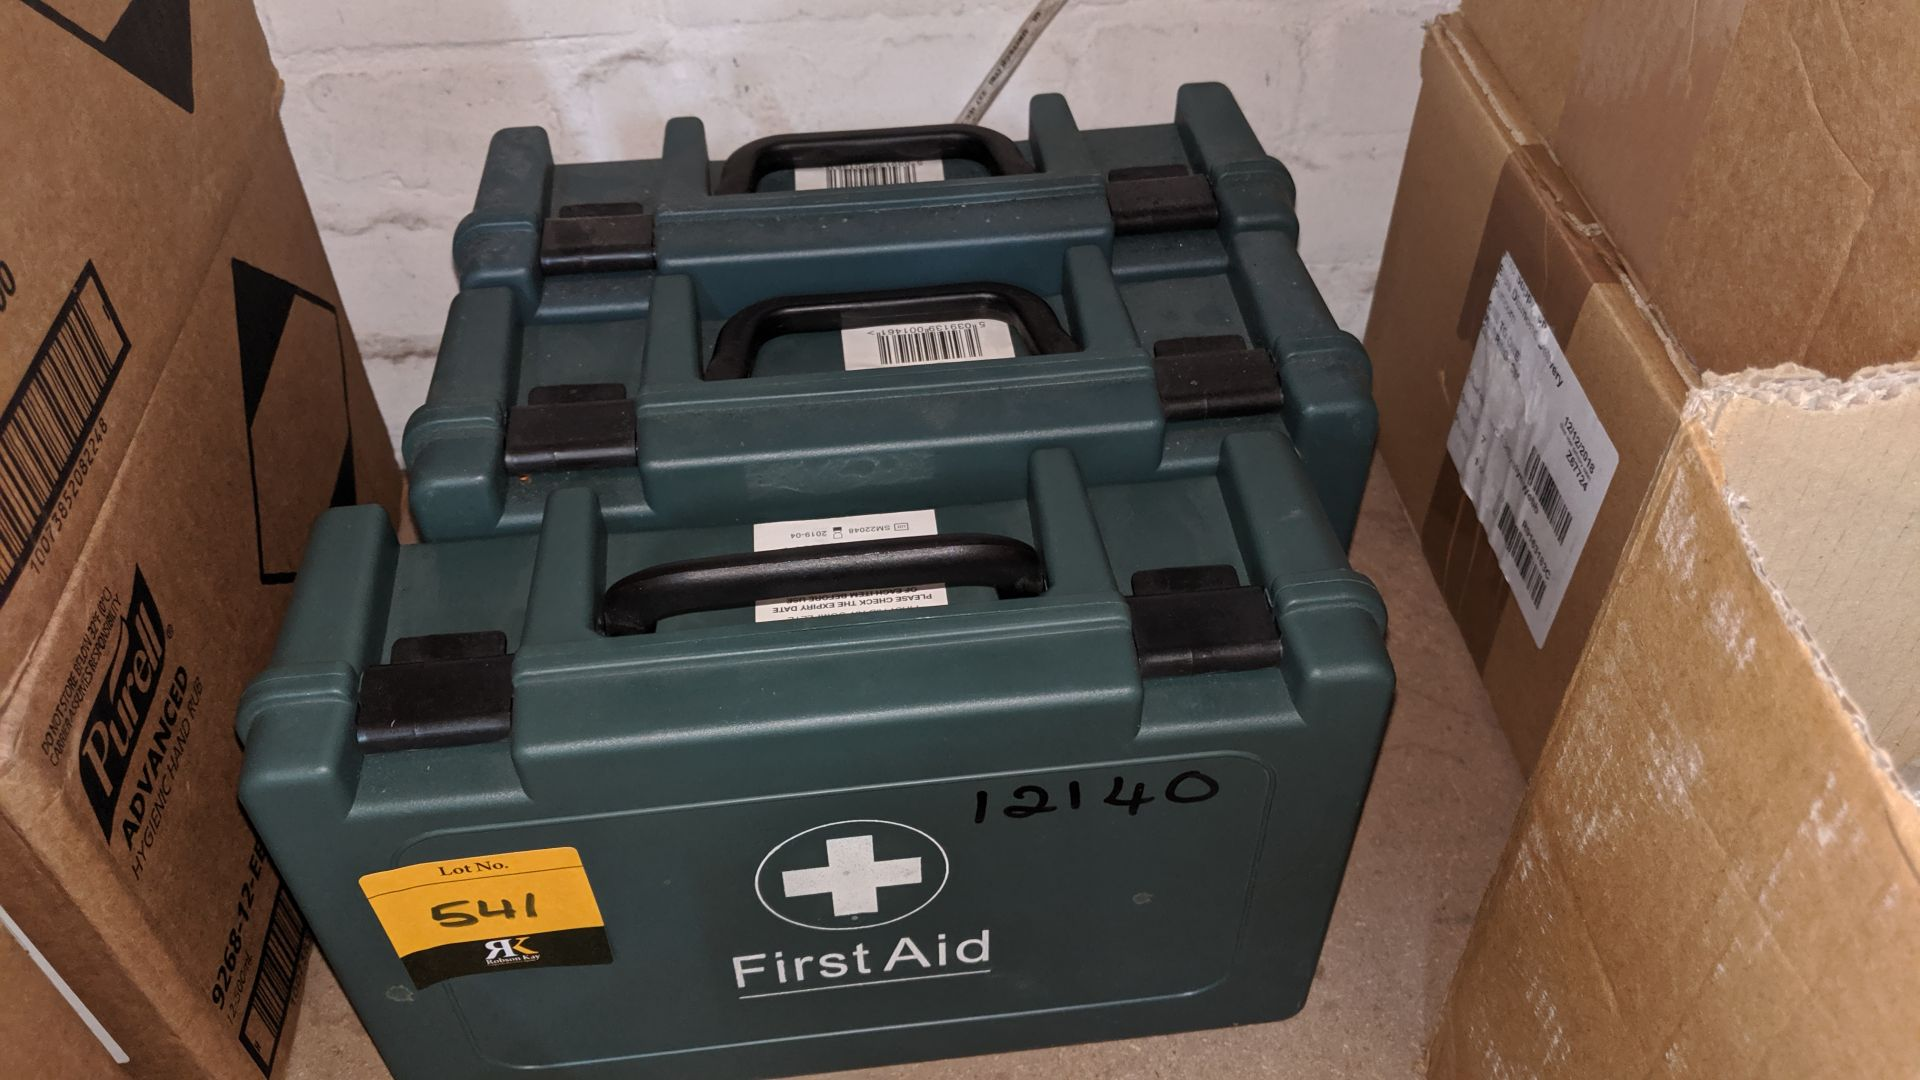 Lot 541 - 3 off first aid kits and contents. This is one of a large number of lots used/owned by One To One (